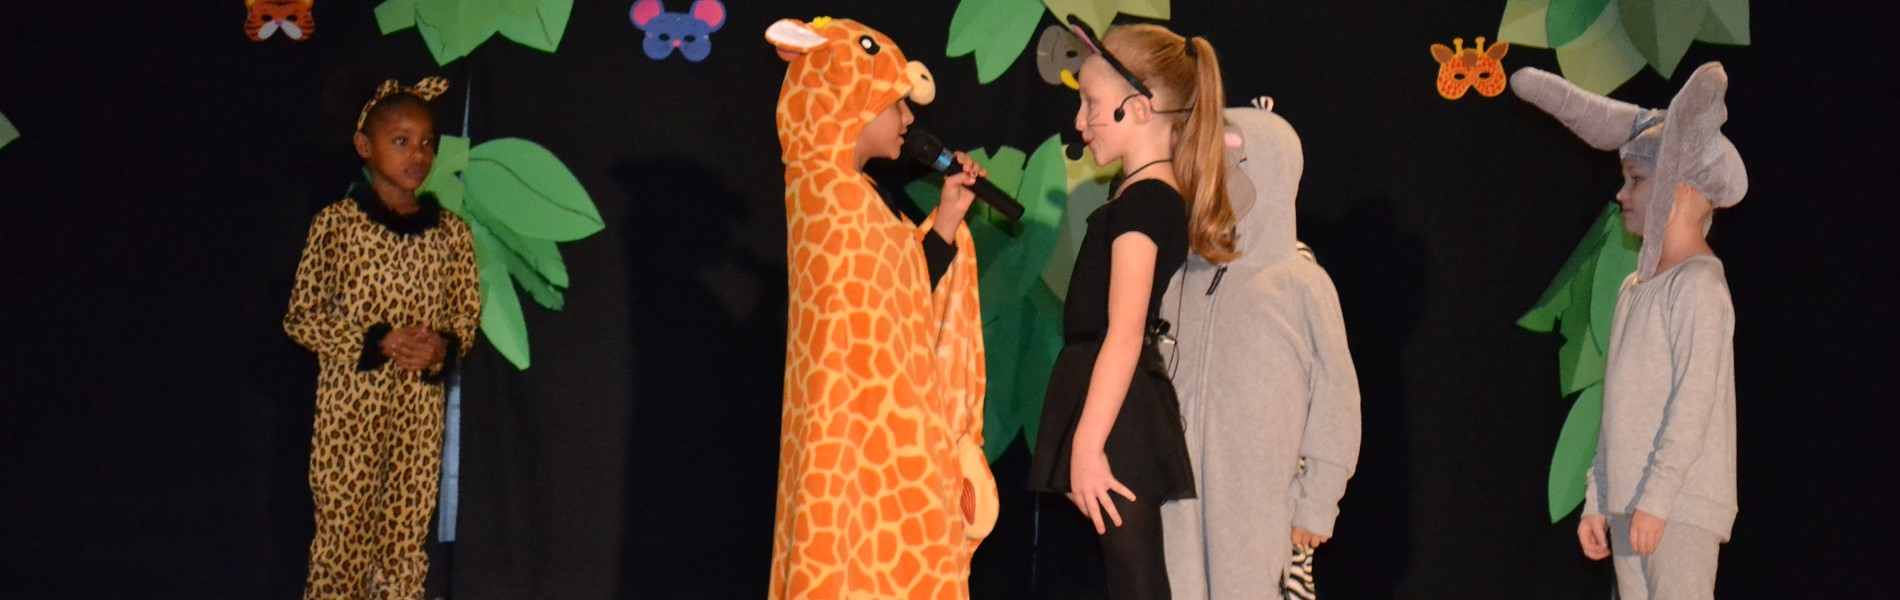 Blackshear Elementary students performing drama